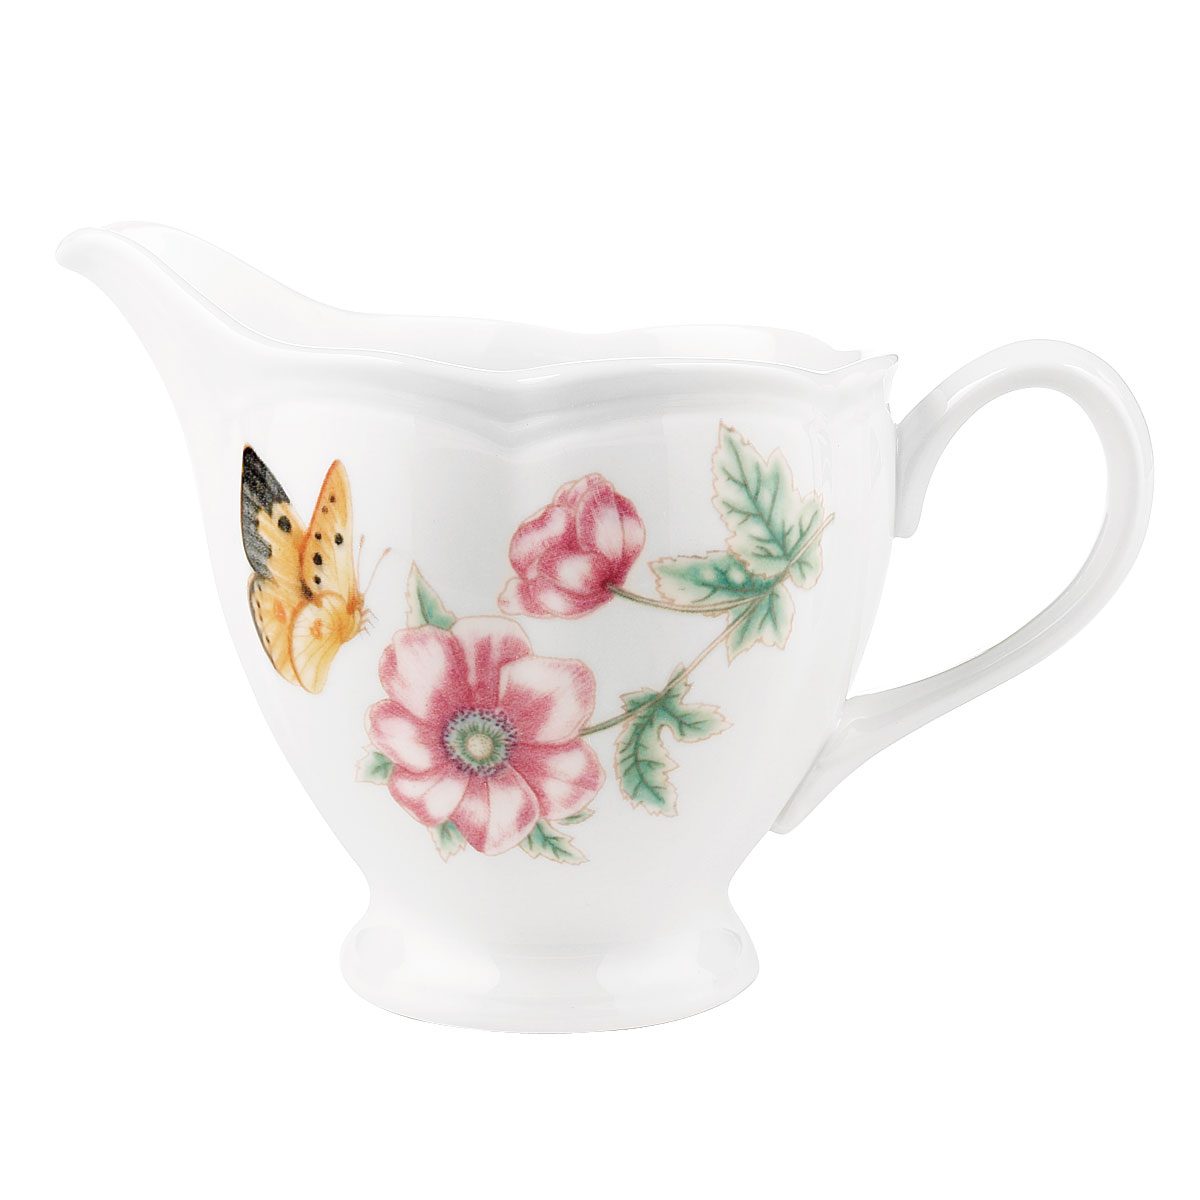 Lenox Butterfly Meadow Dinnerware Creamer